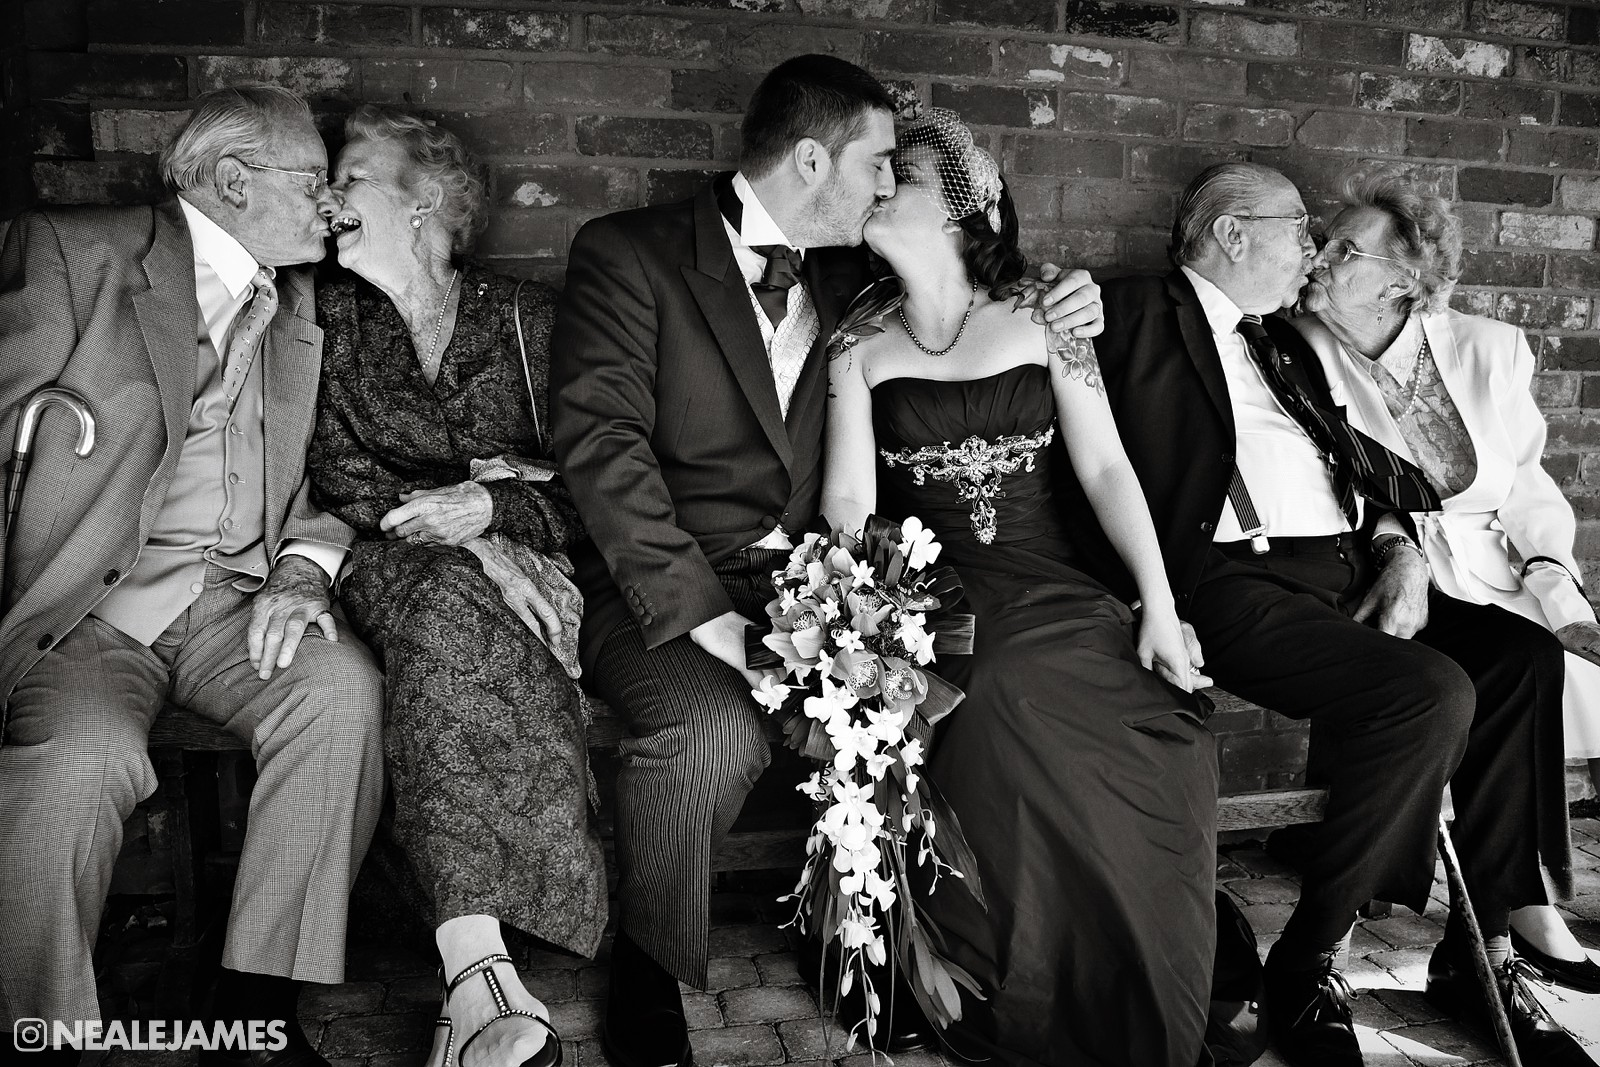 A picture of an alternative style of family shot at a wedding